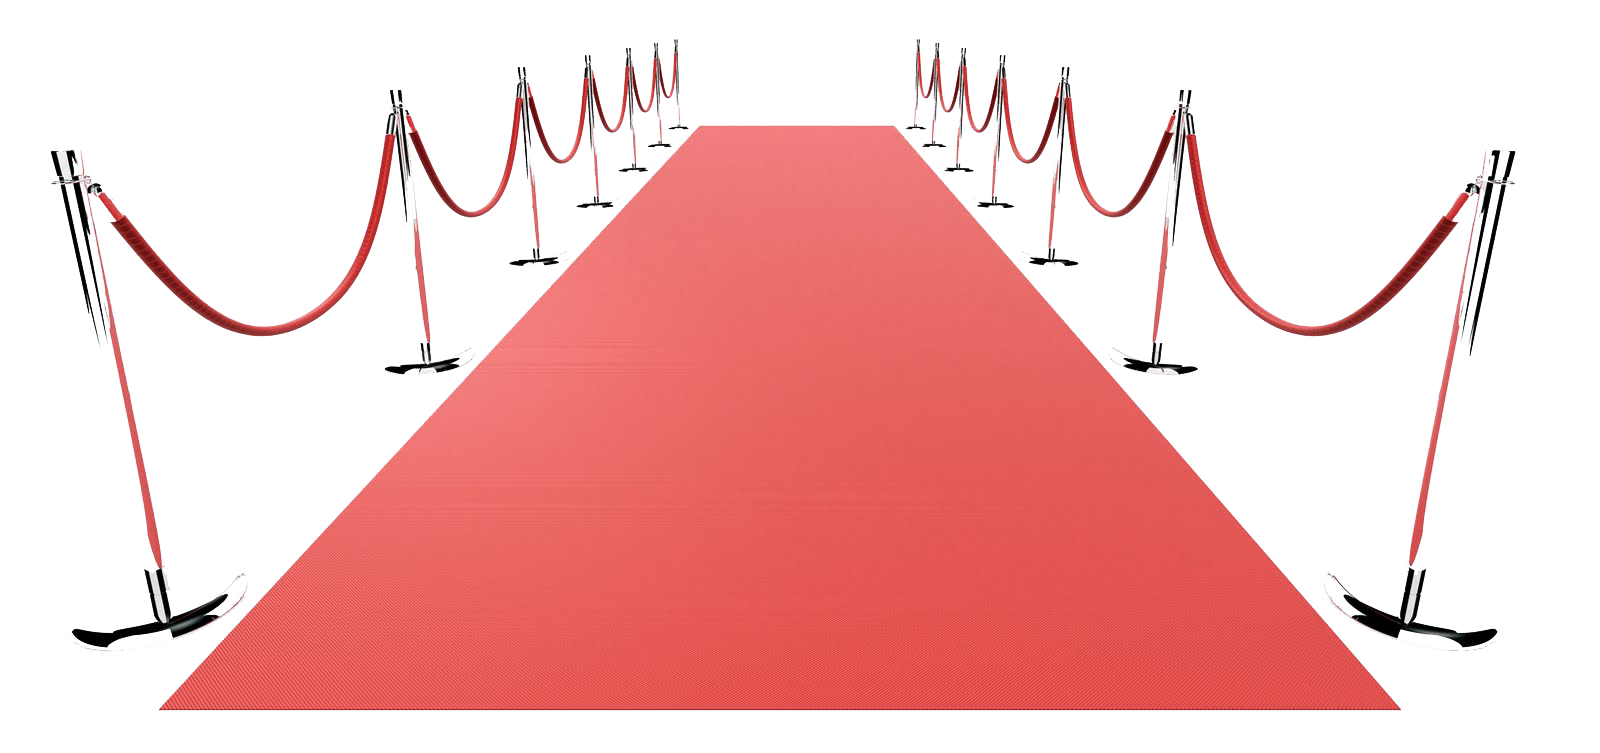 1600x753 Red Carpet Clipart Popular